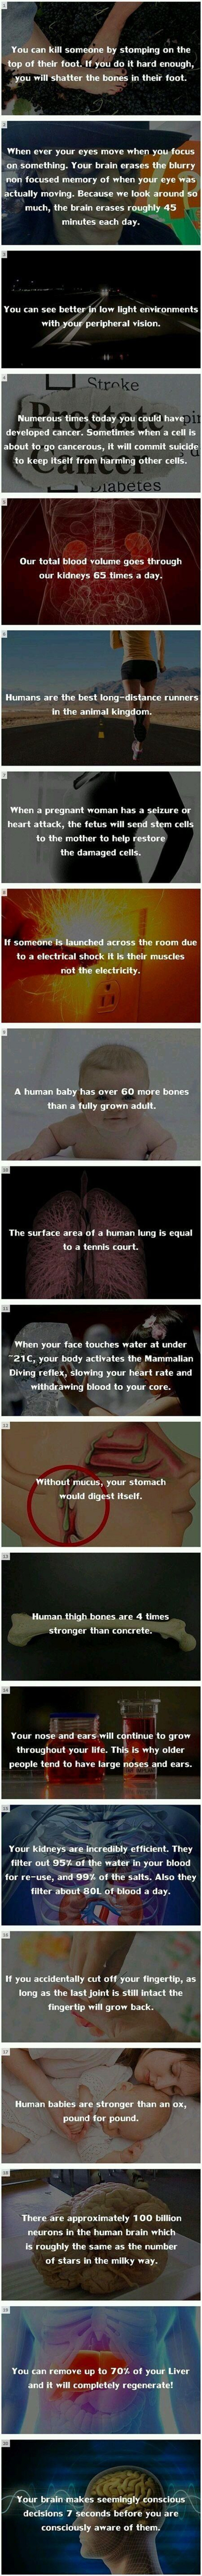 20 Amazing Facts That Will Change Your Life